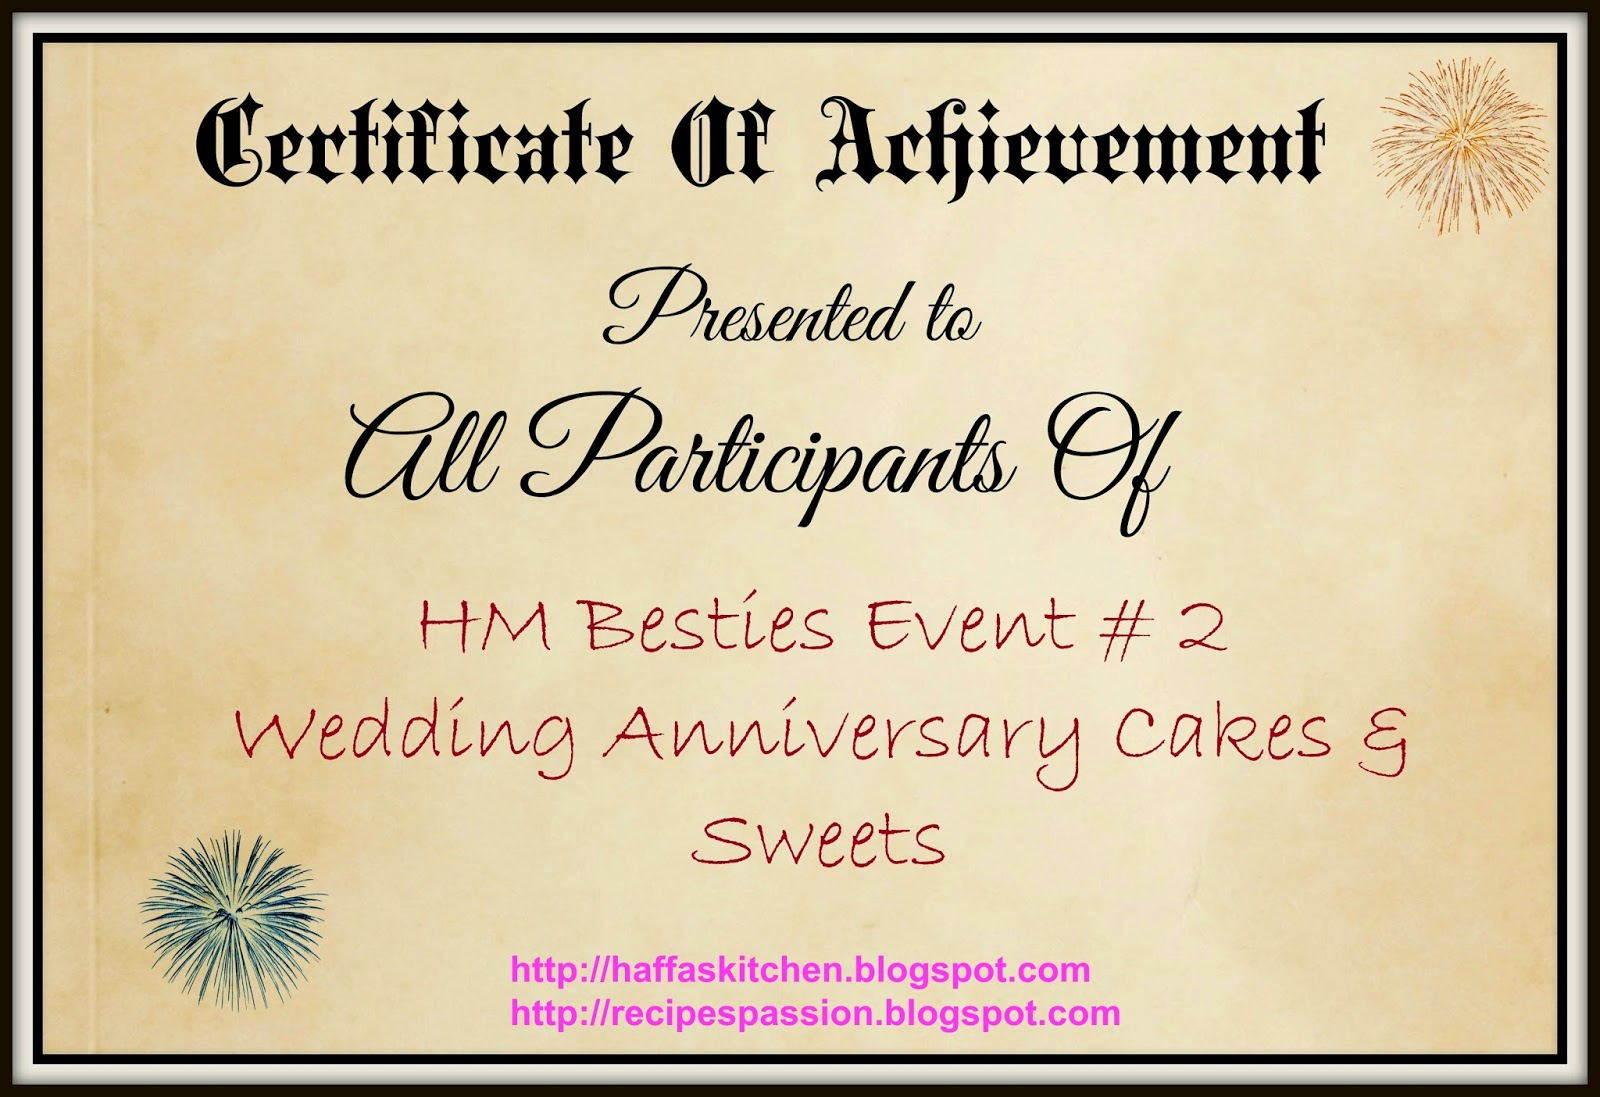 Blog Events| Event Round up| Wedding Anniversary Ideas| Cakes Ideas| Certificate of achievement